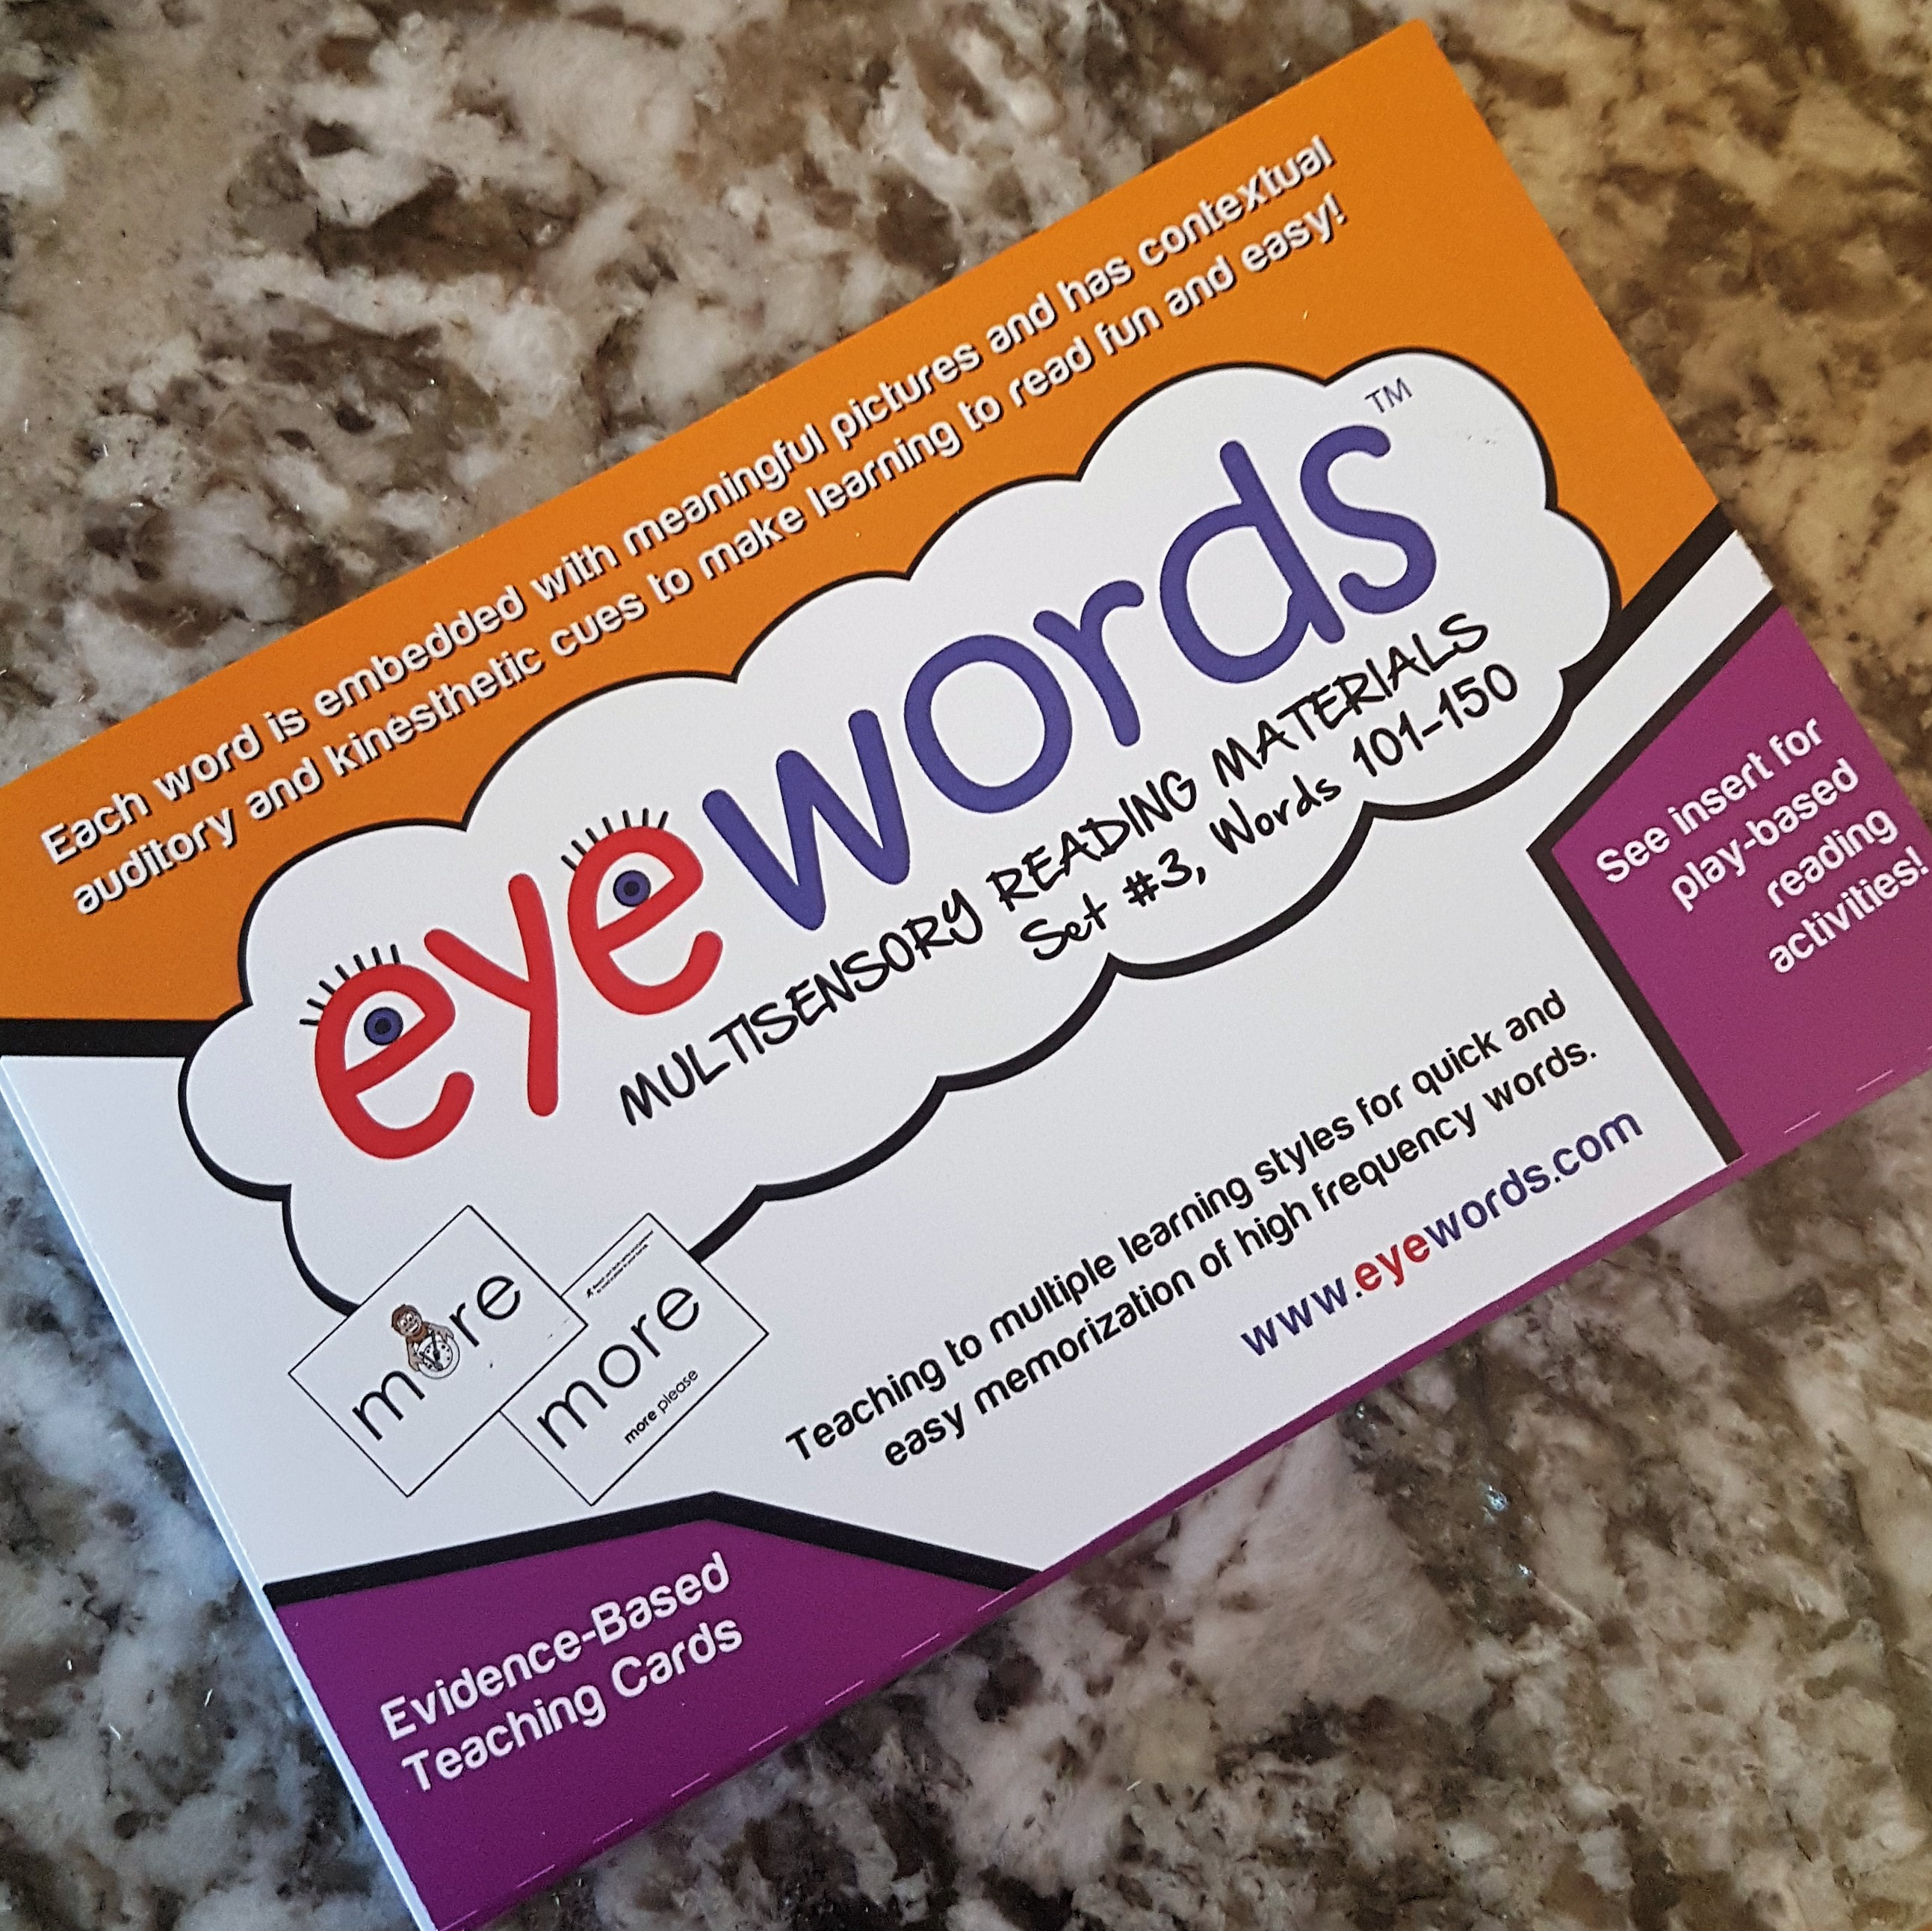 Eyewords Multisensory Sight Word Cards, Set #3, Words 101-150